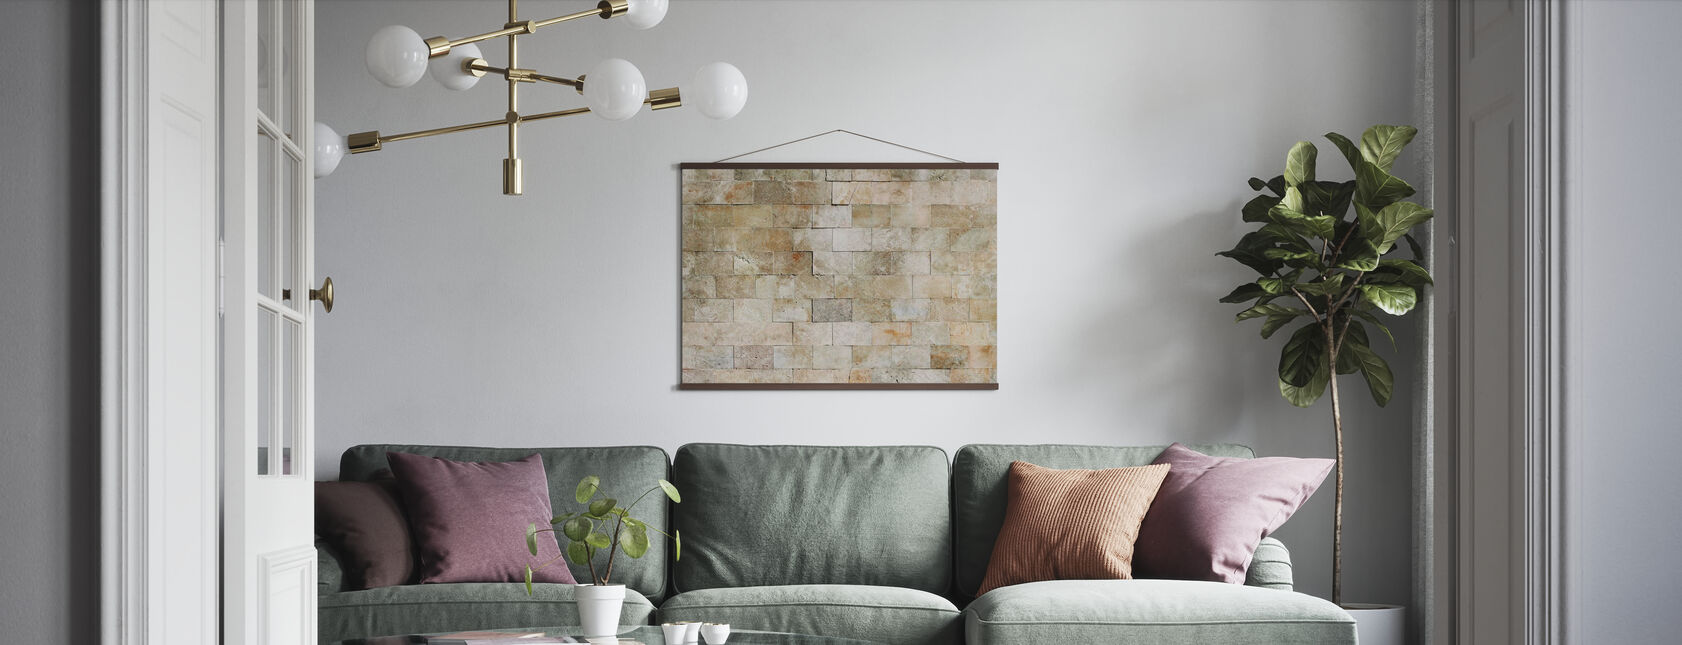 Tiled Stone Wall - Poster - Living Room